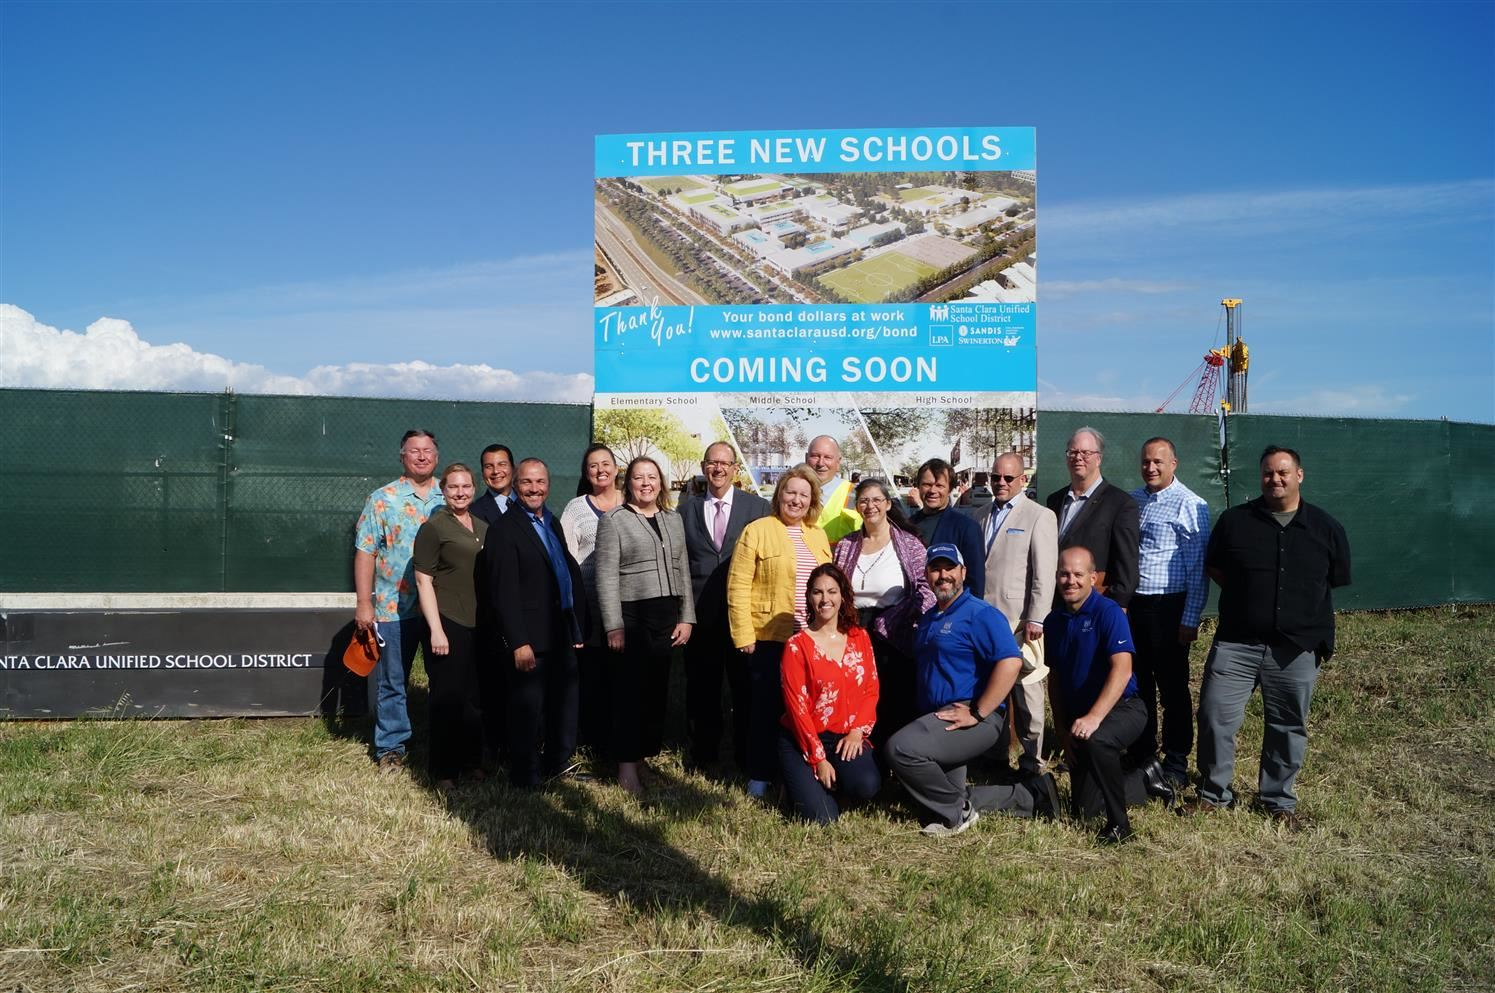 Board of Trustees, superintendents, bond projects and public relations staff pose in front of Agnews construction signage.